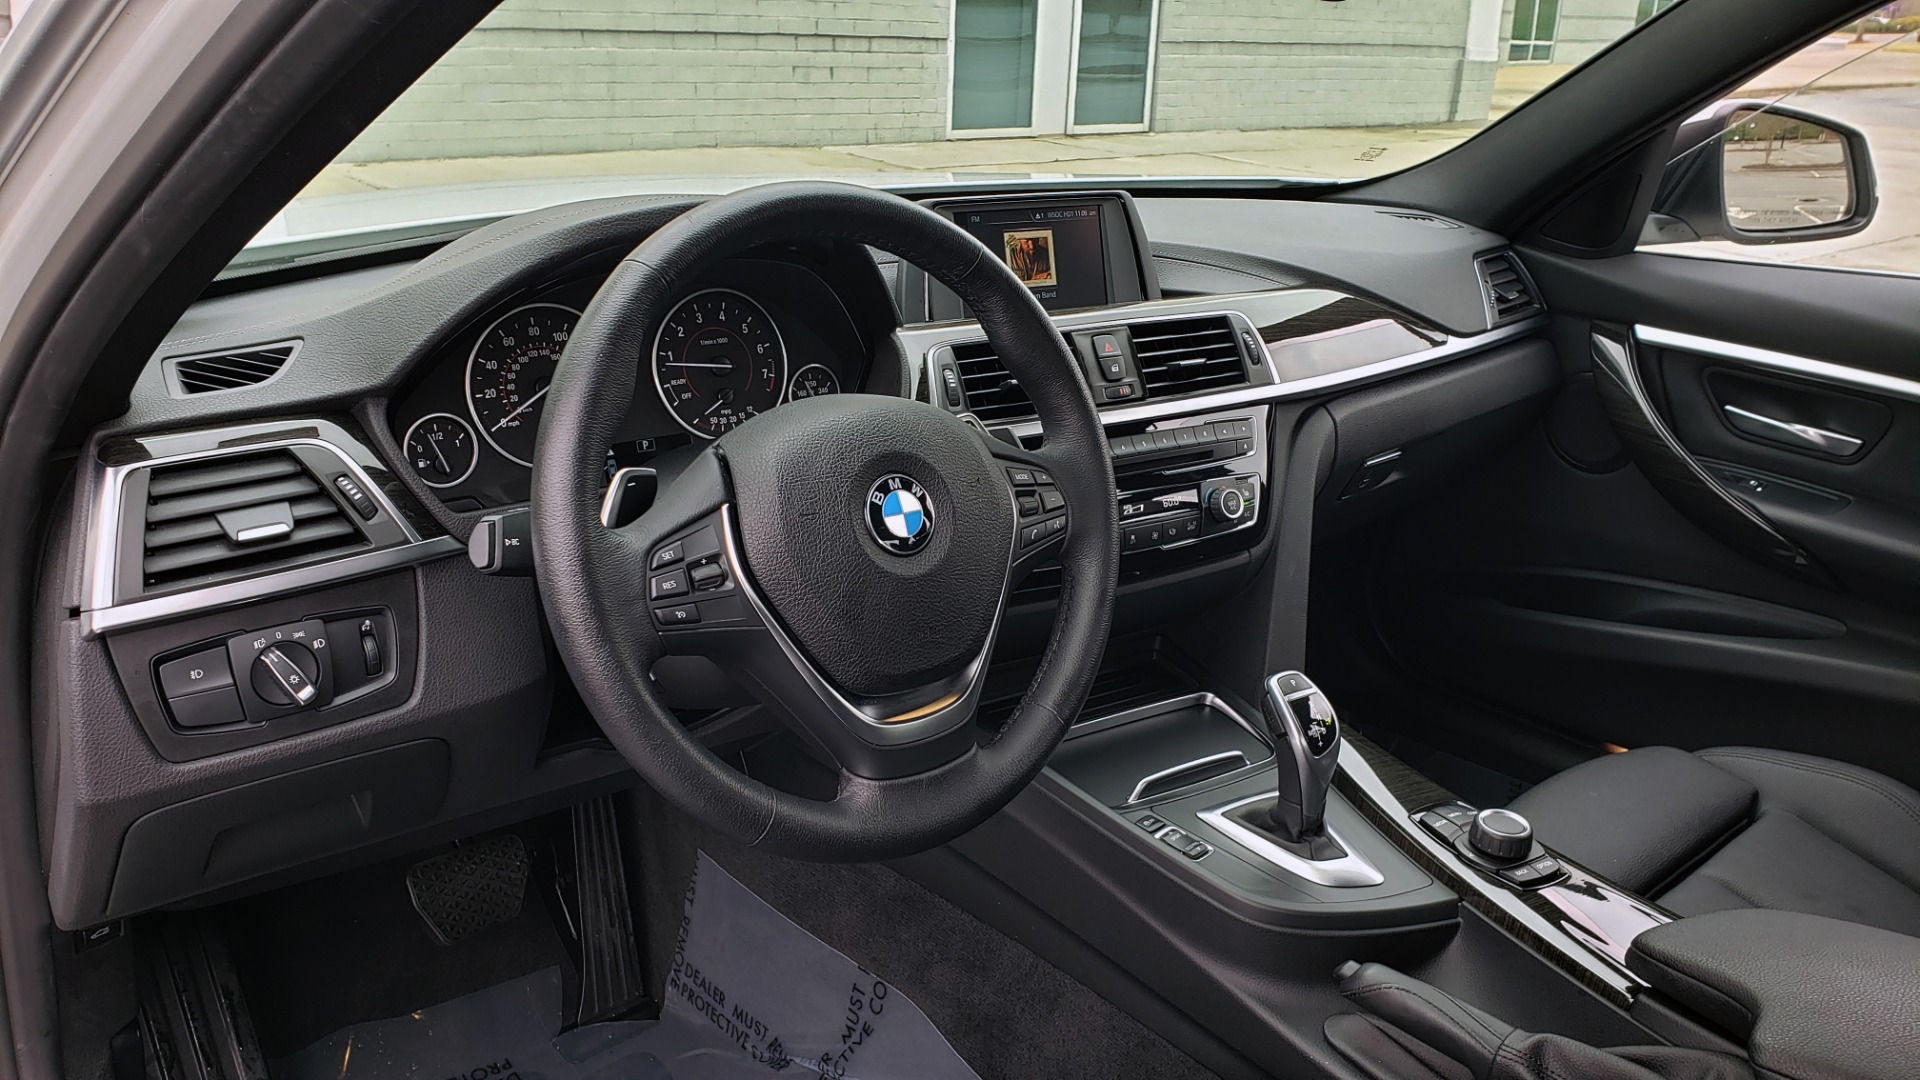 Used 2018 BMW 3 SERIES 330I XDRIVE / CONV PKG / SUNROOF / HTD STS / REARVIEW for sale $24,795 at Formula Imports in Charlotte NC 28227 37